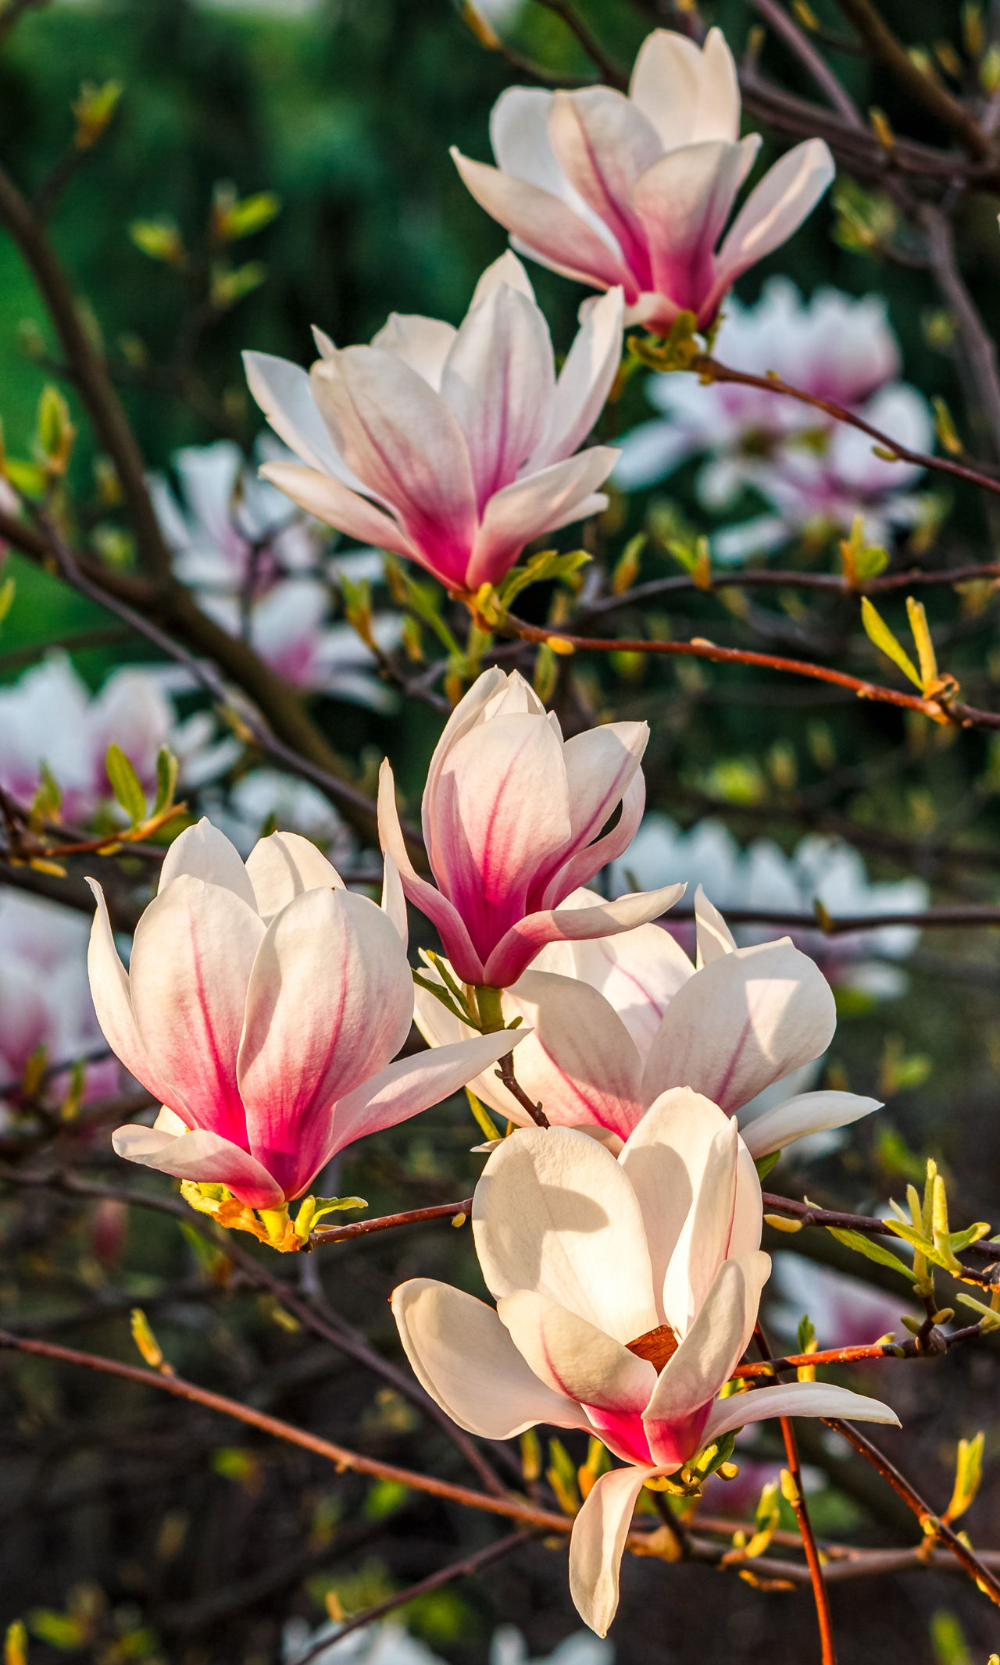 You Need To Be Aware Of The Diseases That Affect Magnolia Trees Gardenerdy In 2020 Nature Photography Flowers Magnolia Trees Magnolia Flower